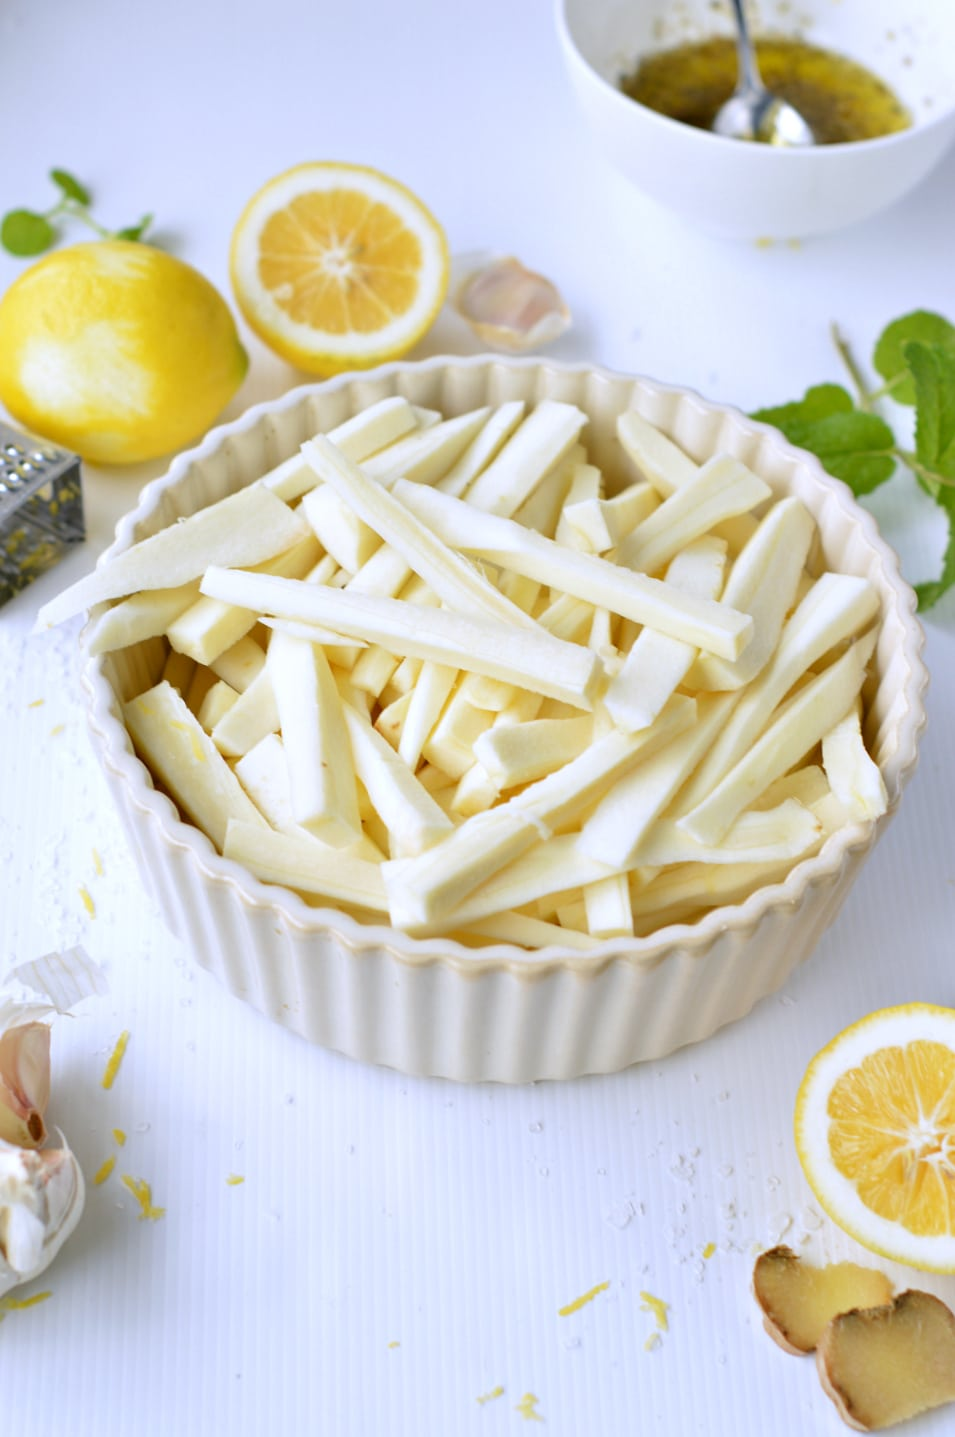 parsnip fries cut